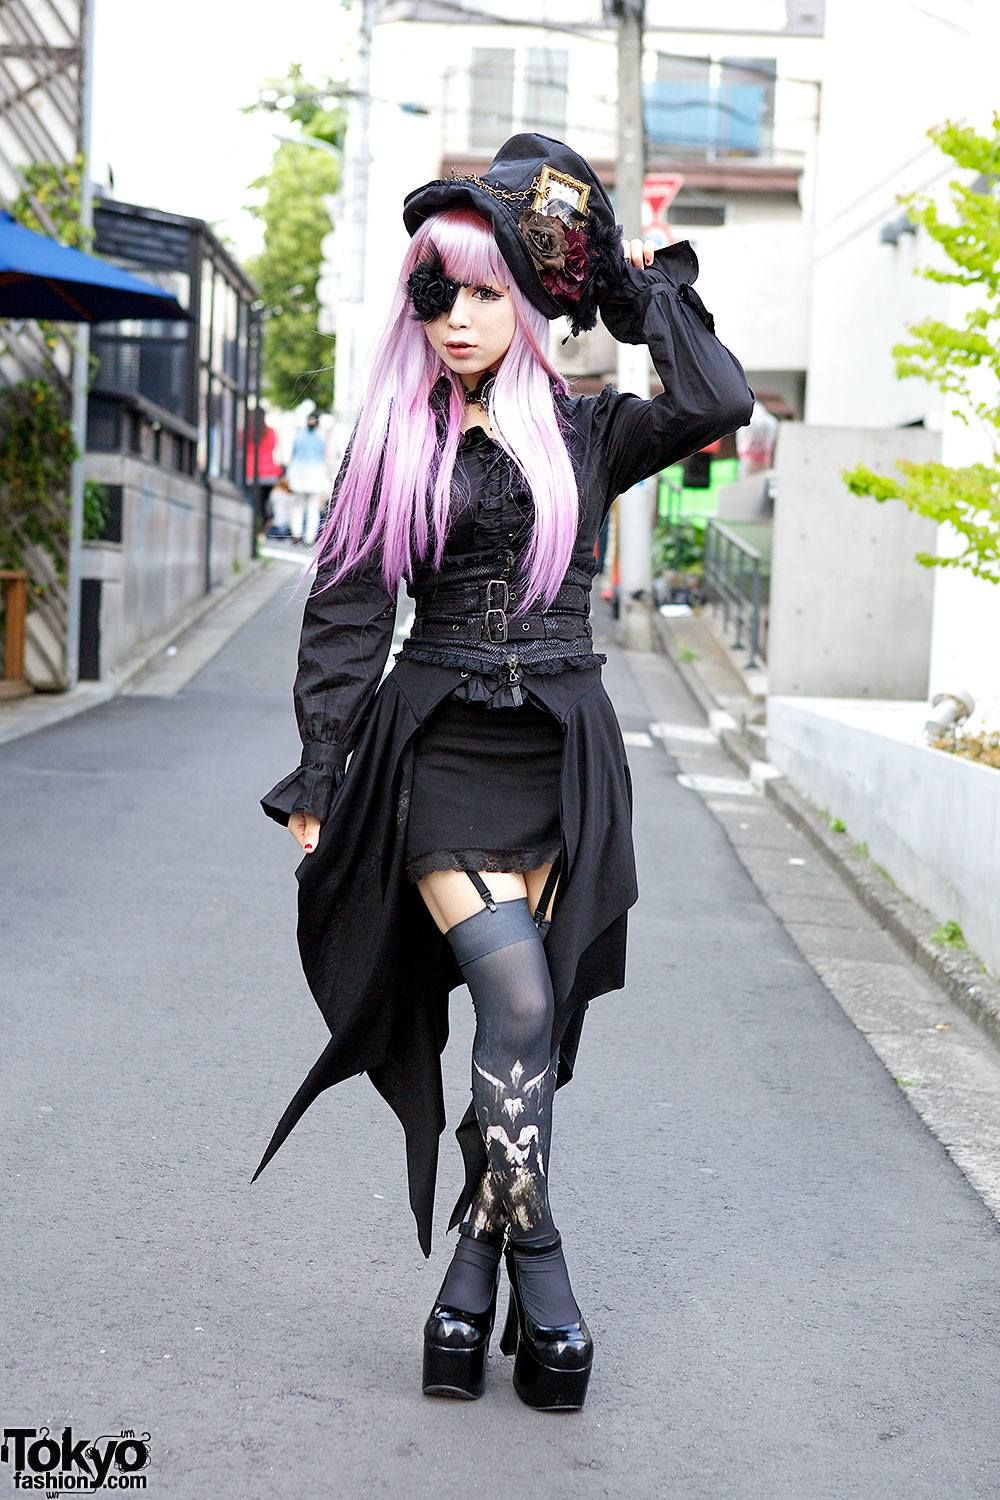 037194397 Tokyo Fashion - GOTH GIRL - Rumanjyu is a Japanese model whose striking  gothic style caught our eye in #Harajuku. Her look features a handmade hat,  ...